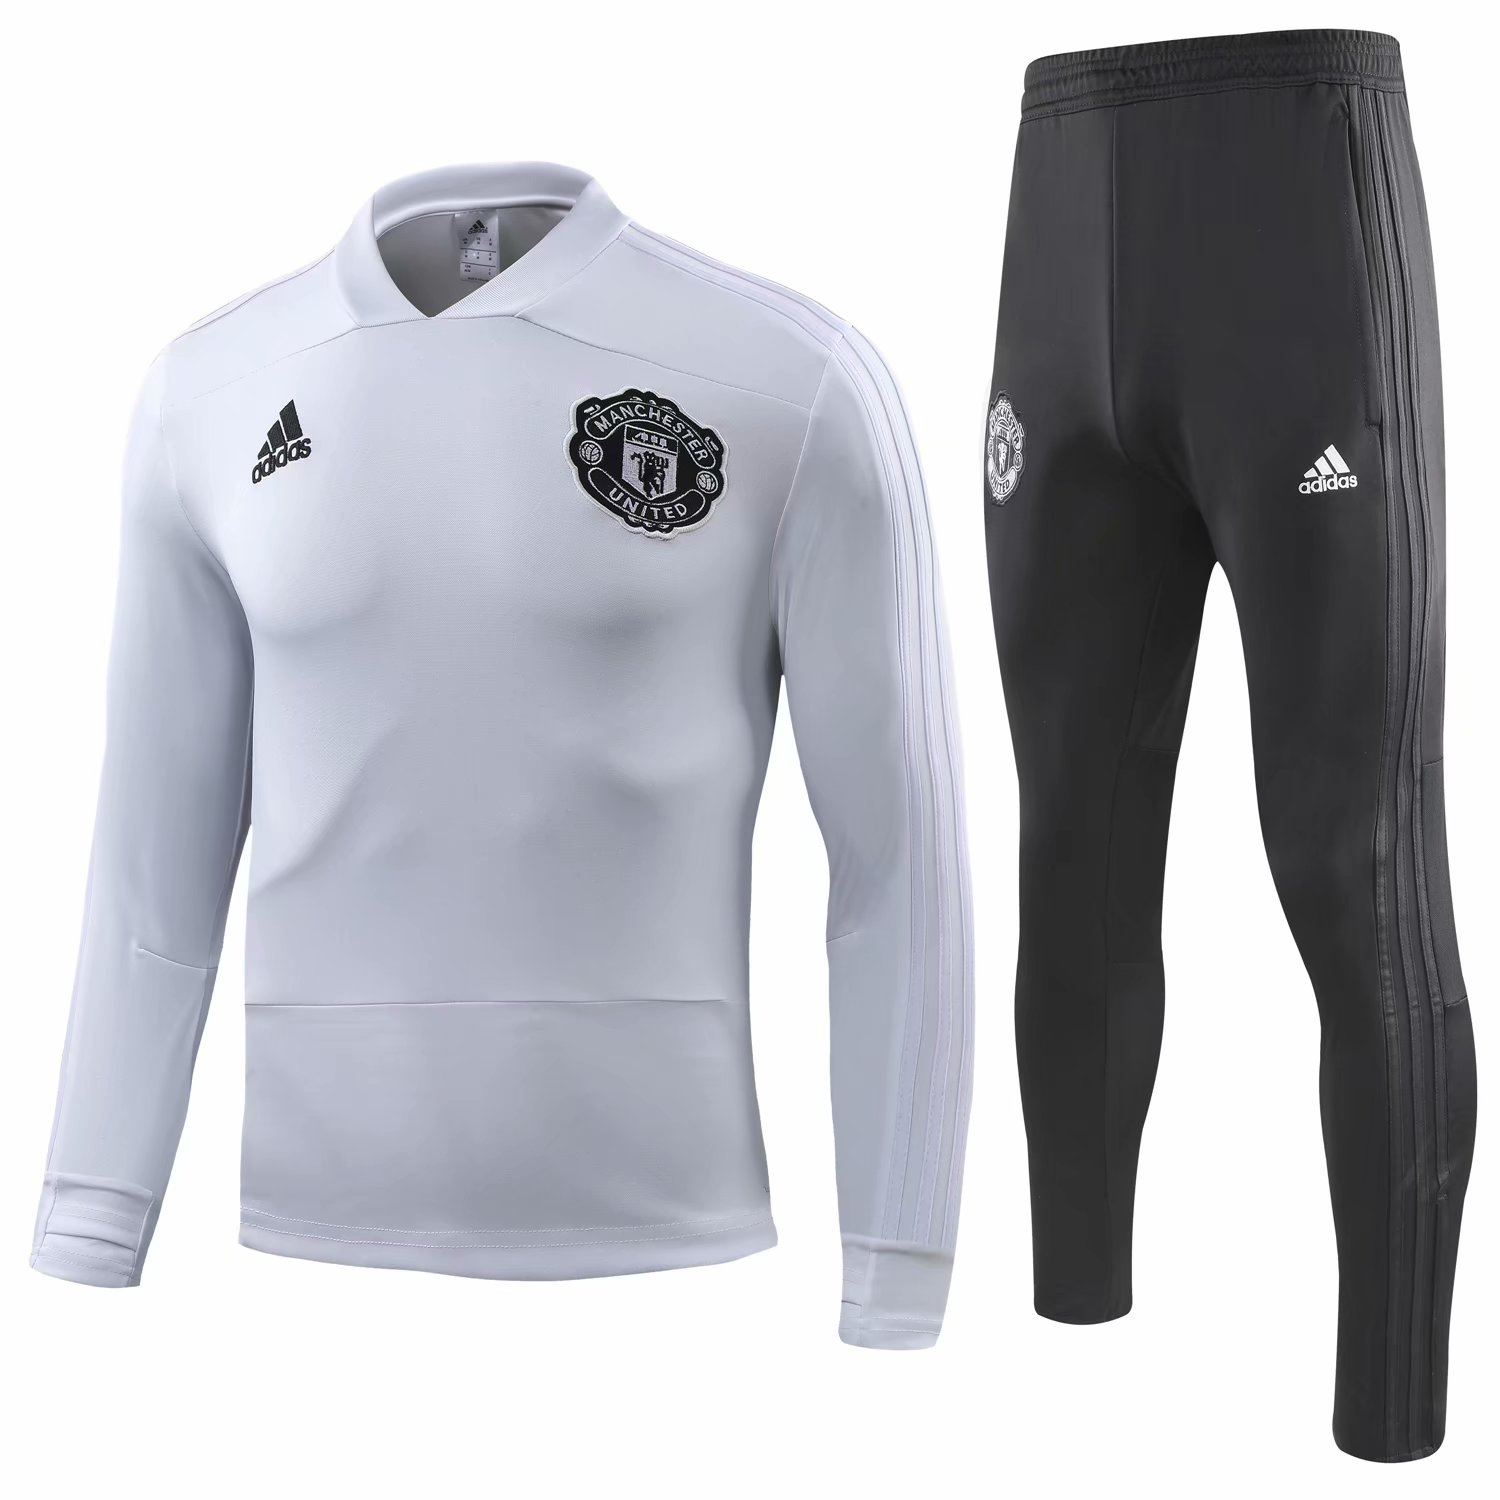 174da22f8 US  34.8 - Manchester United Training Suit Champions League White 2018 19 -  www.fcsoccerworld.com